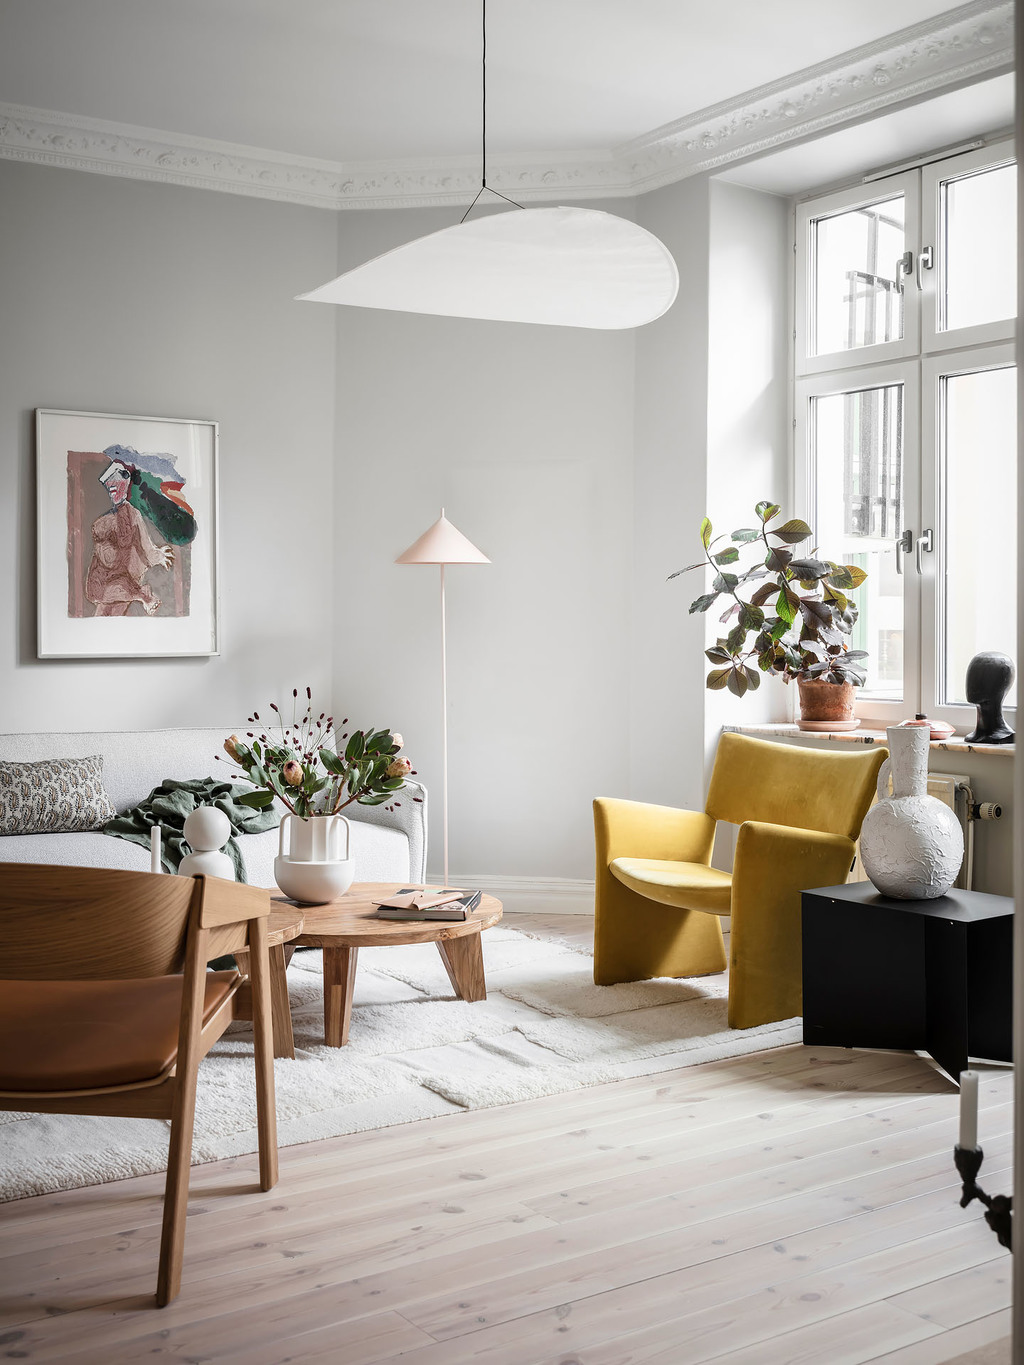 A Calm Light-Filled Apartment in Sweden